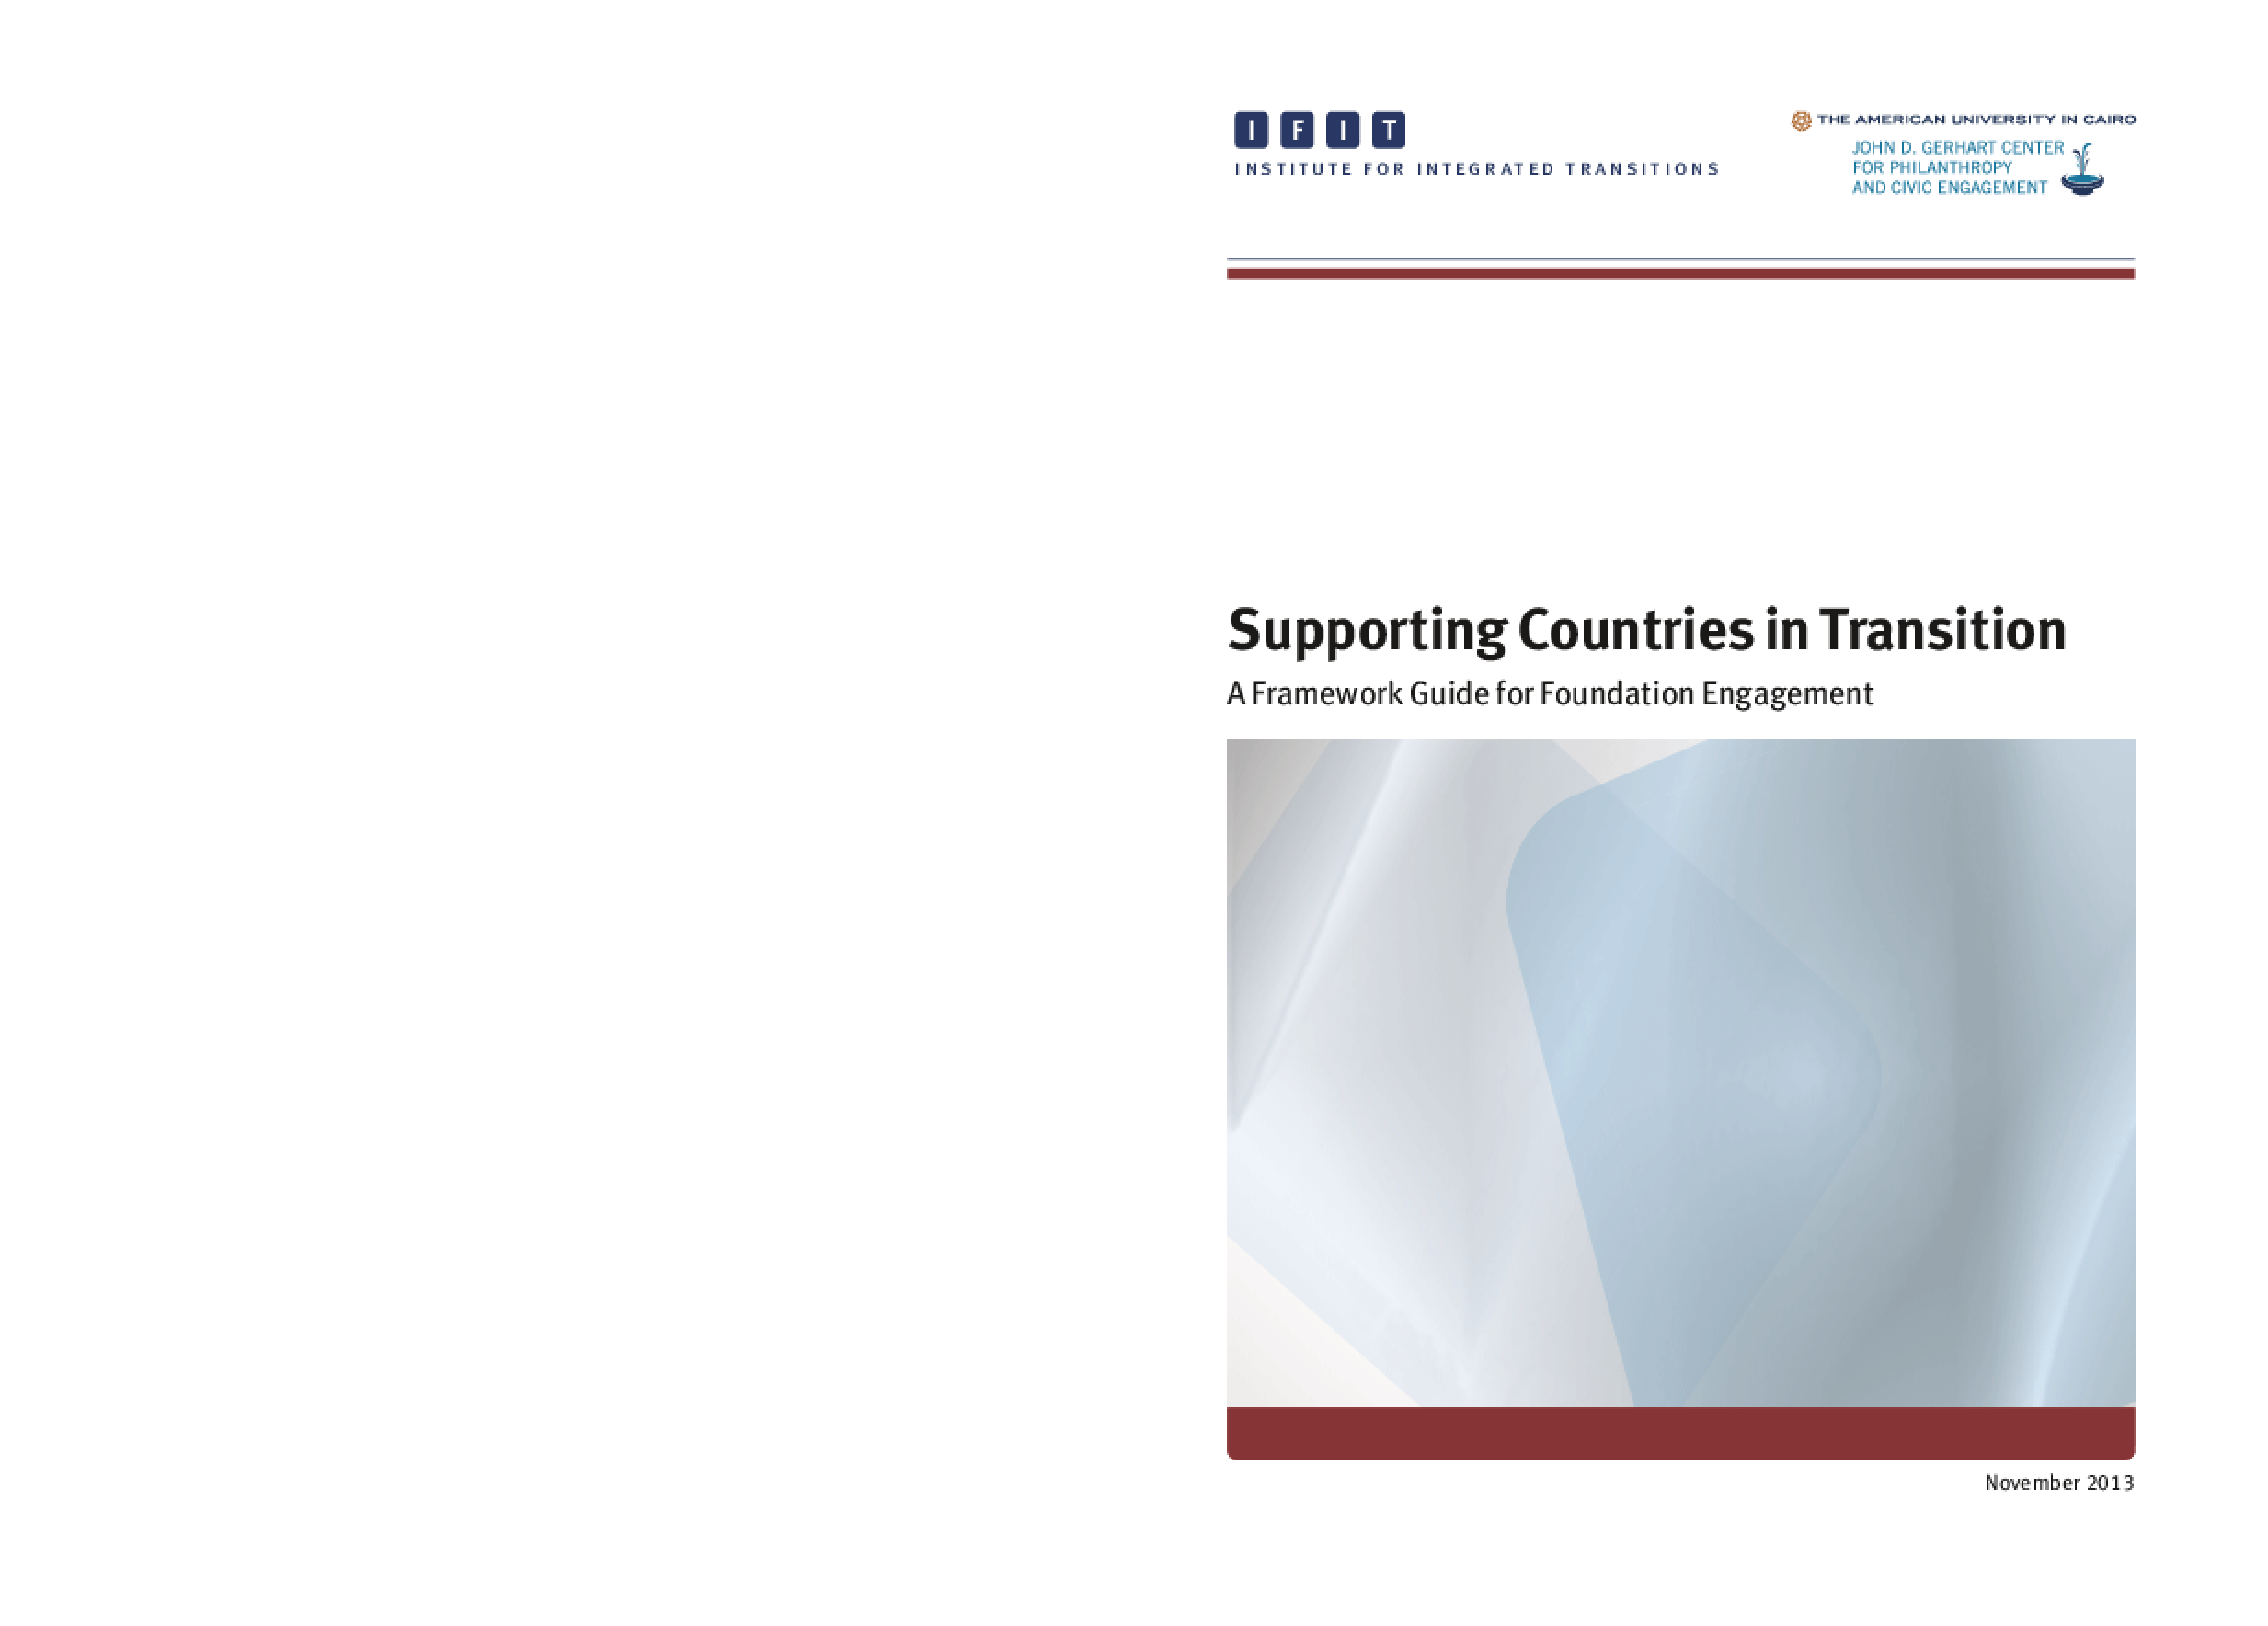 Supporting Countries in Transition: A Framework Guide for Foundation Engagement